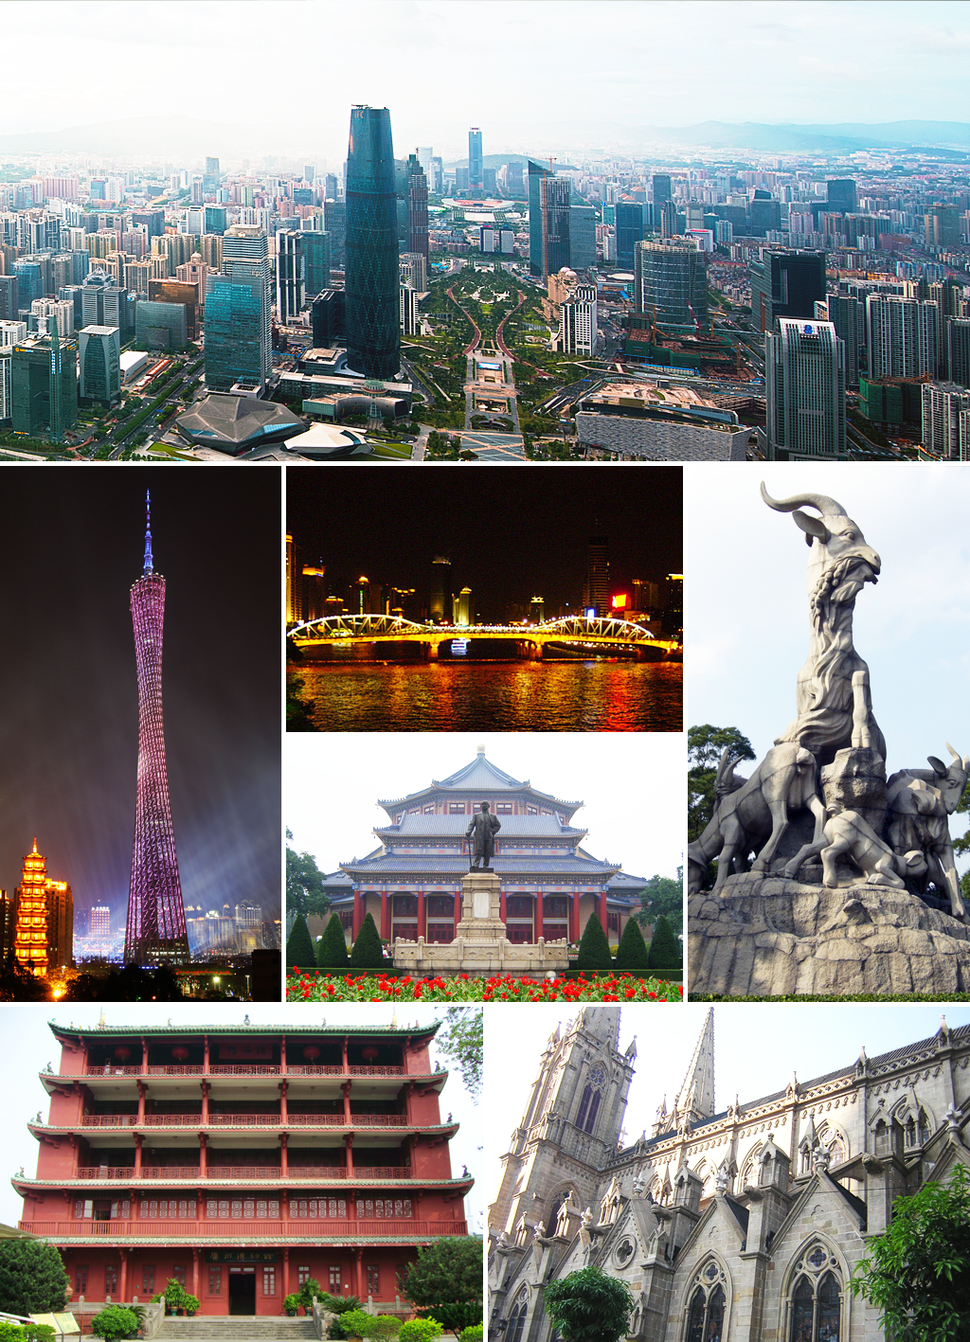 From top: Tianhe CBD, the Canton Tower and Chigang Pagoda, Haizhu Bridge, Sun Yat-sen Memorial Hall, the Five Goat Statue and Zhenhai Tower in Yuexiu Park, and Sacred Heart Cathedral.